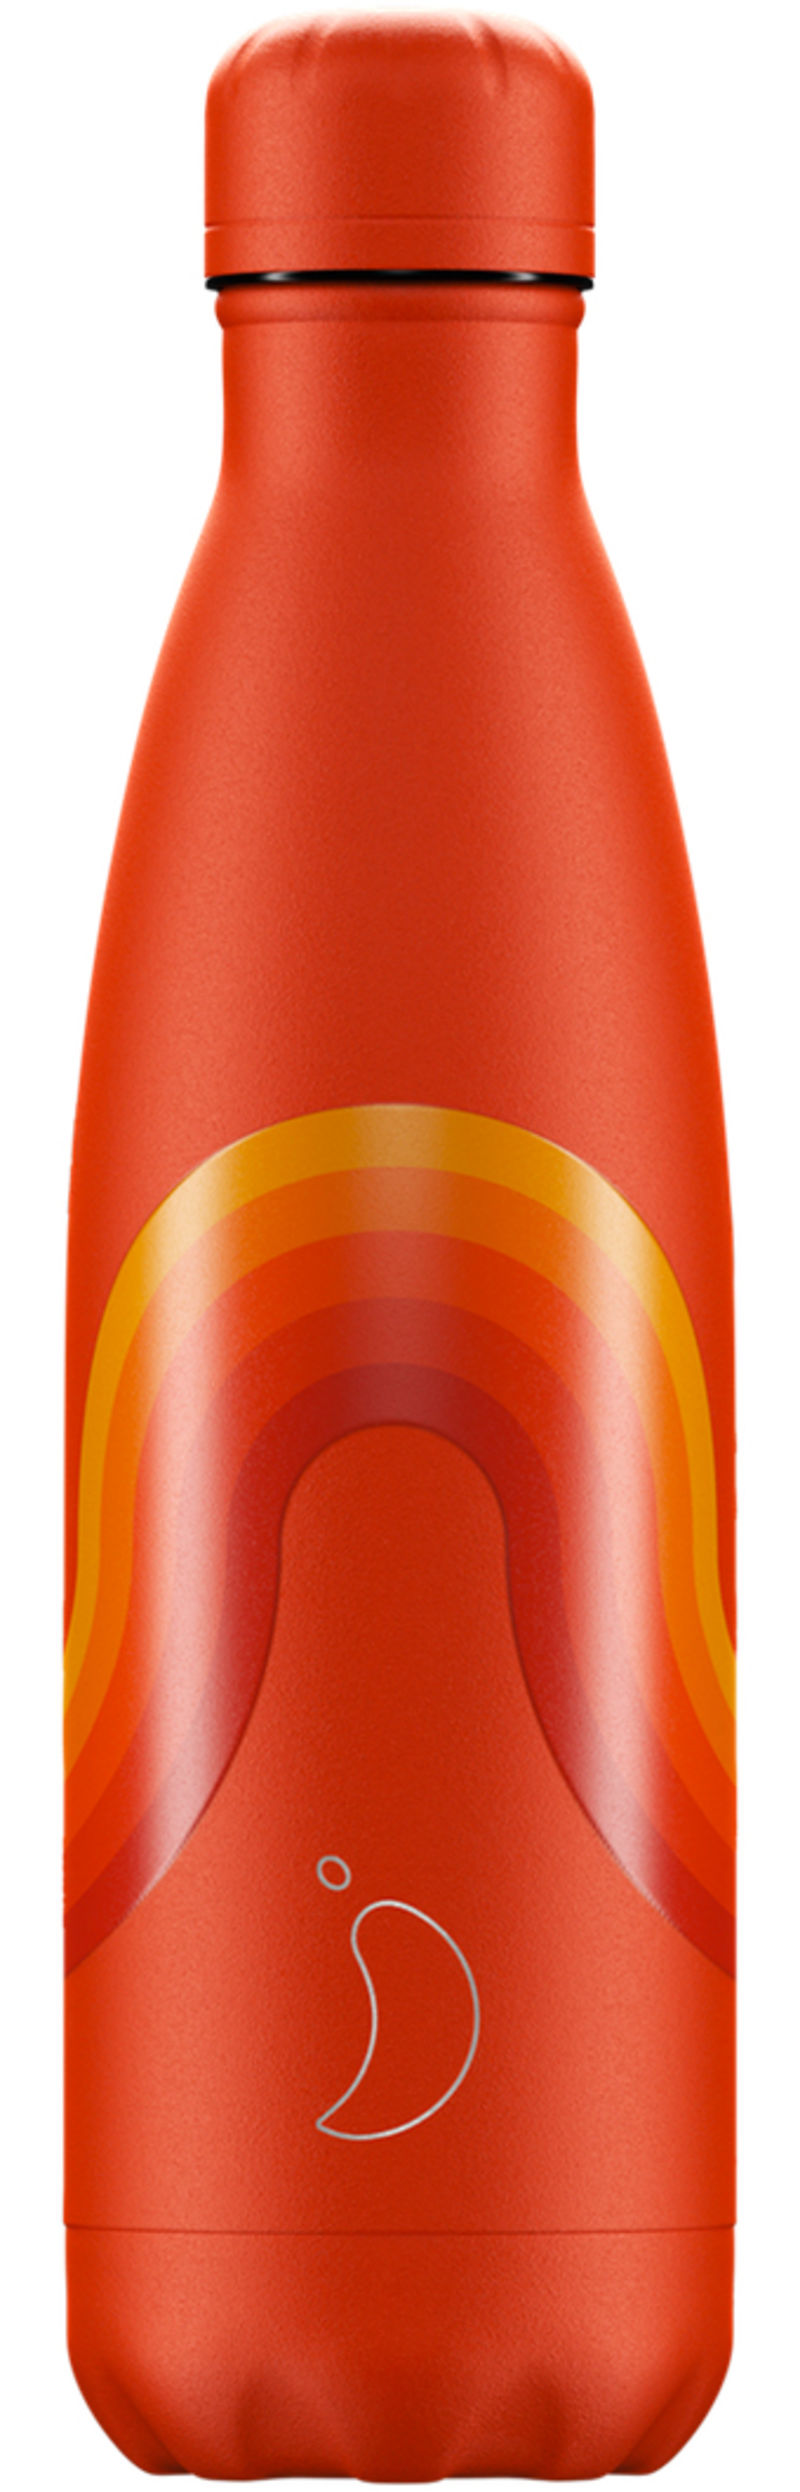 BOTELLA INOX RETRO NARANJA 500ml